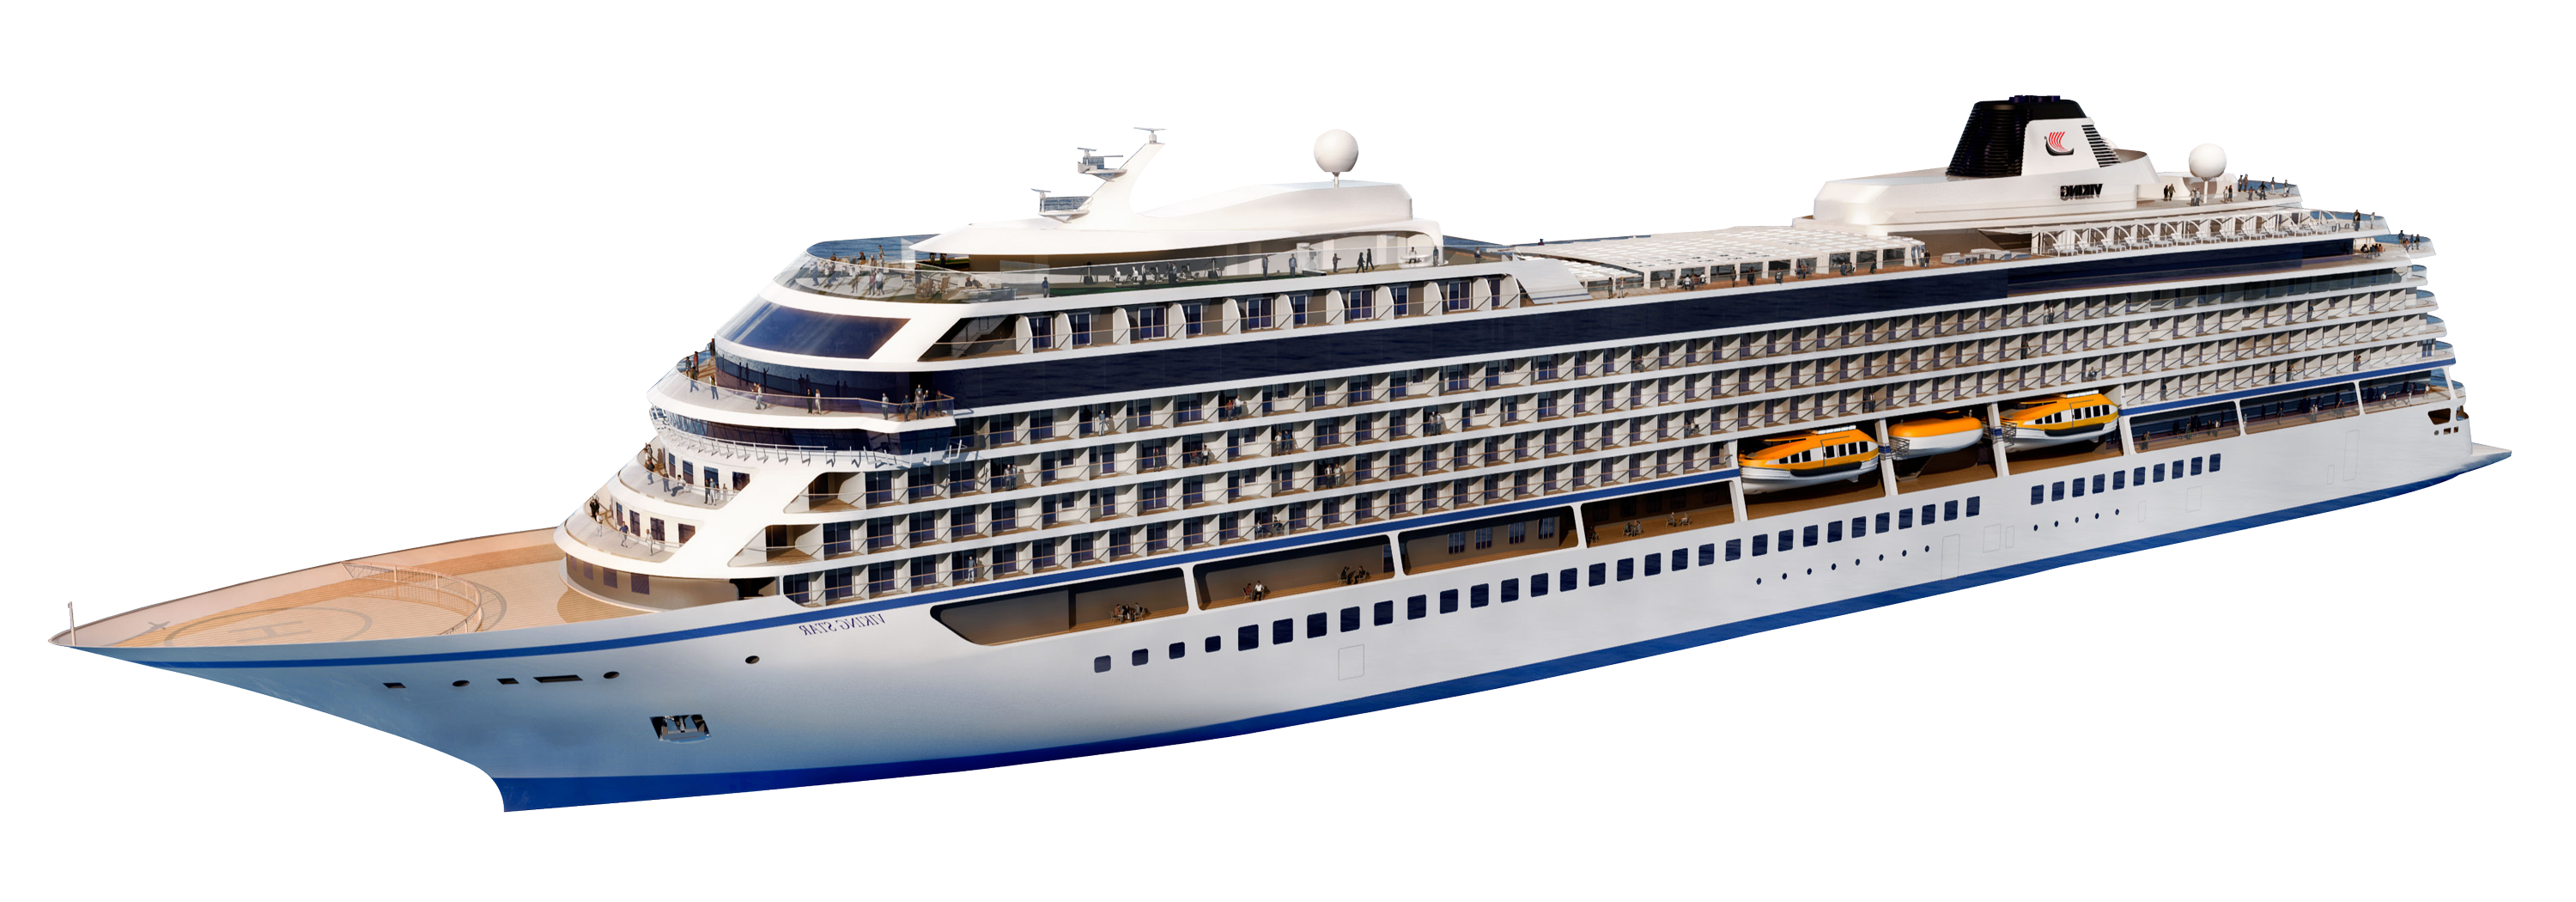 Ship Transparent Background - Cruise Ship PNG